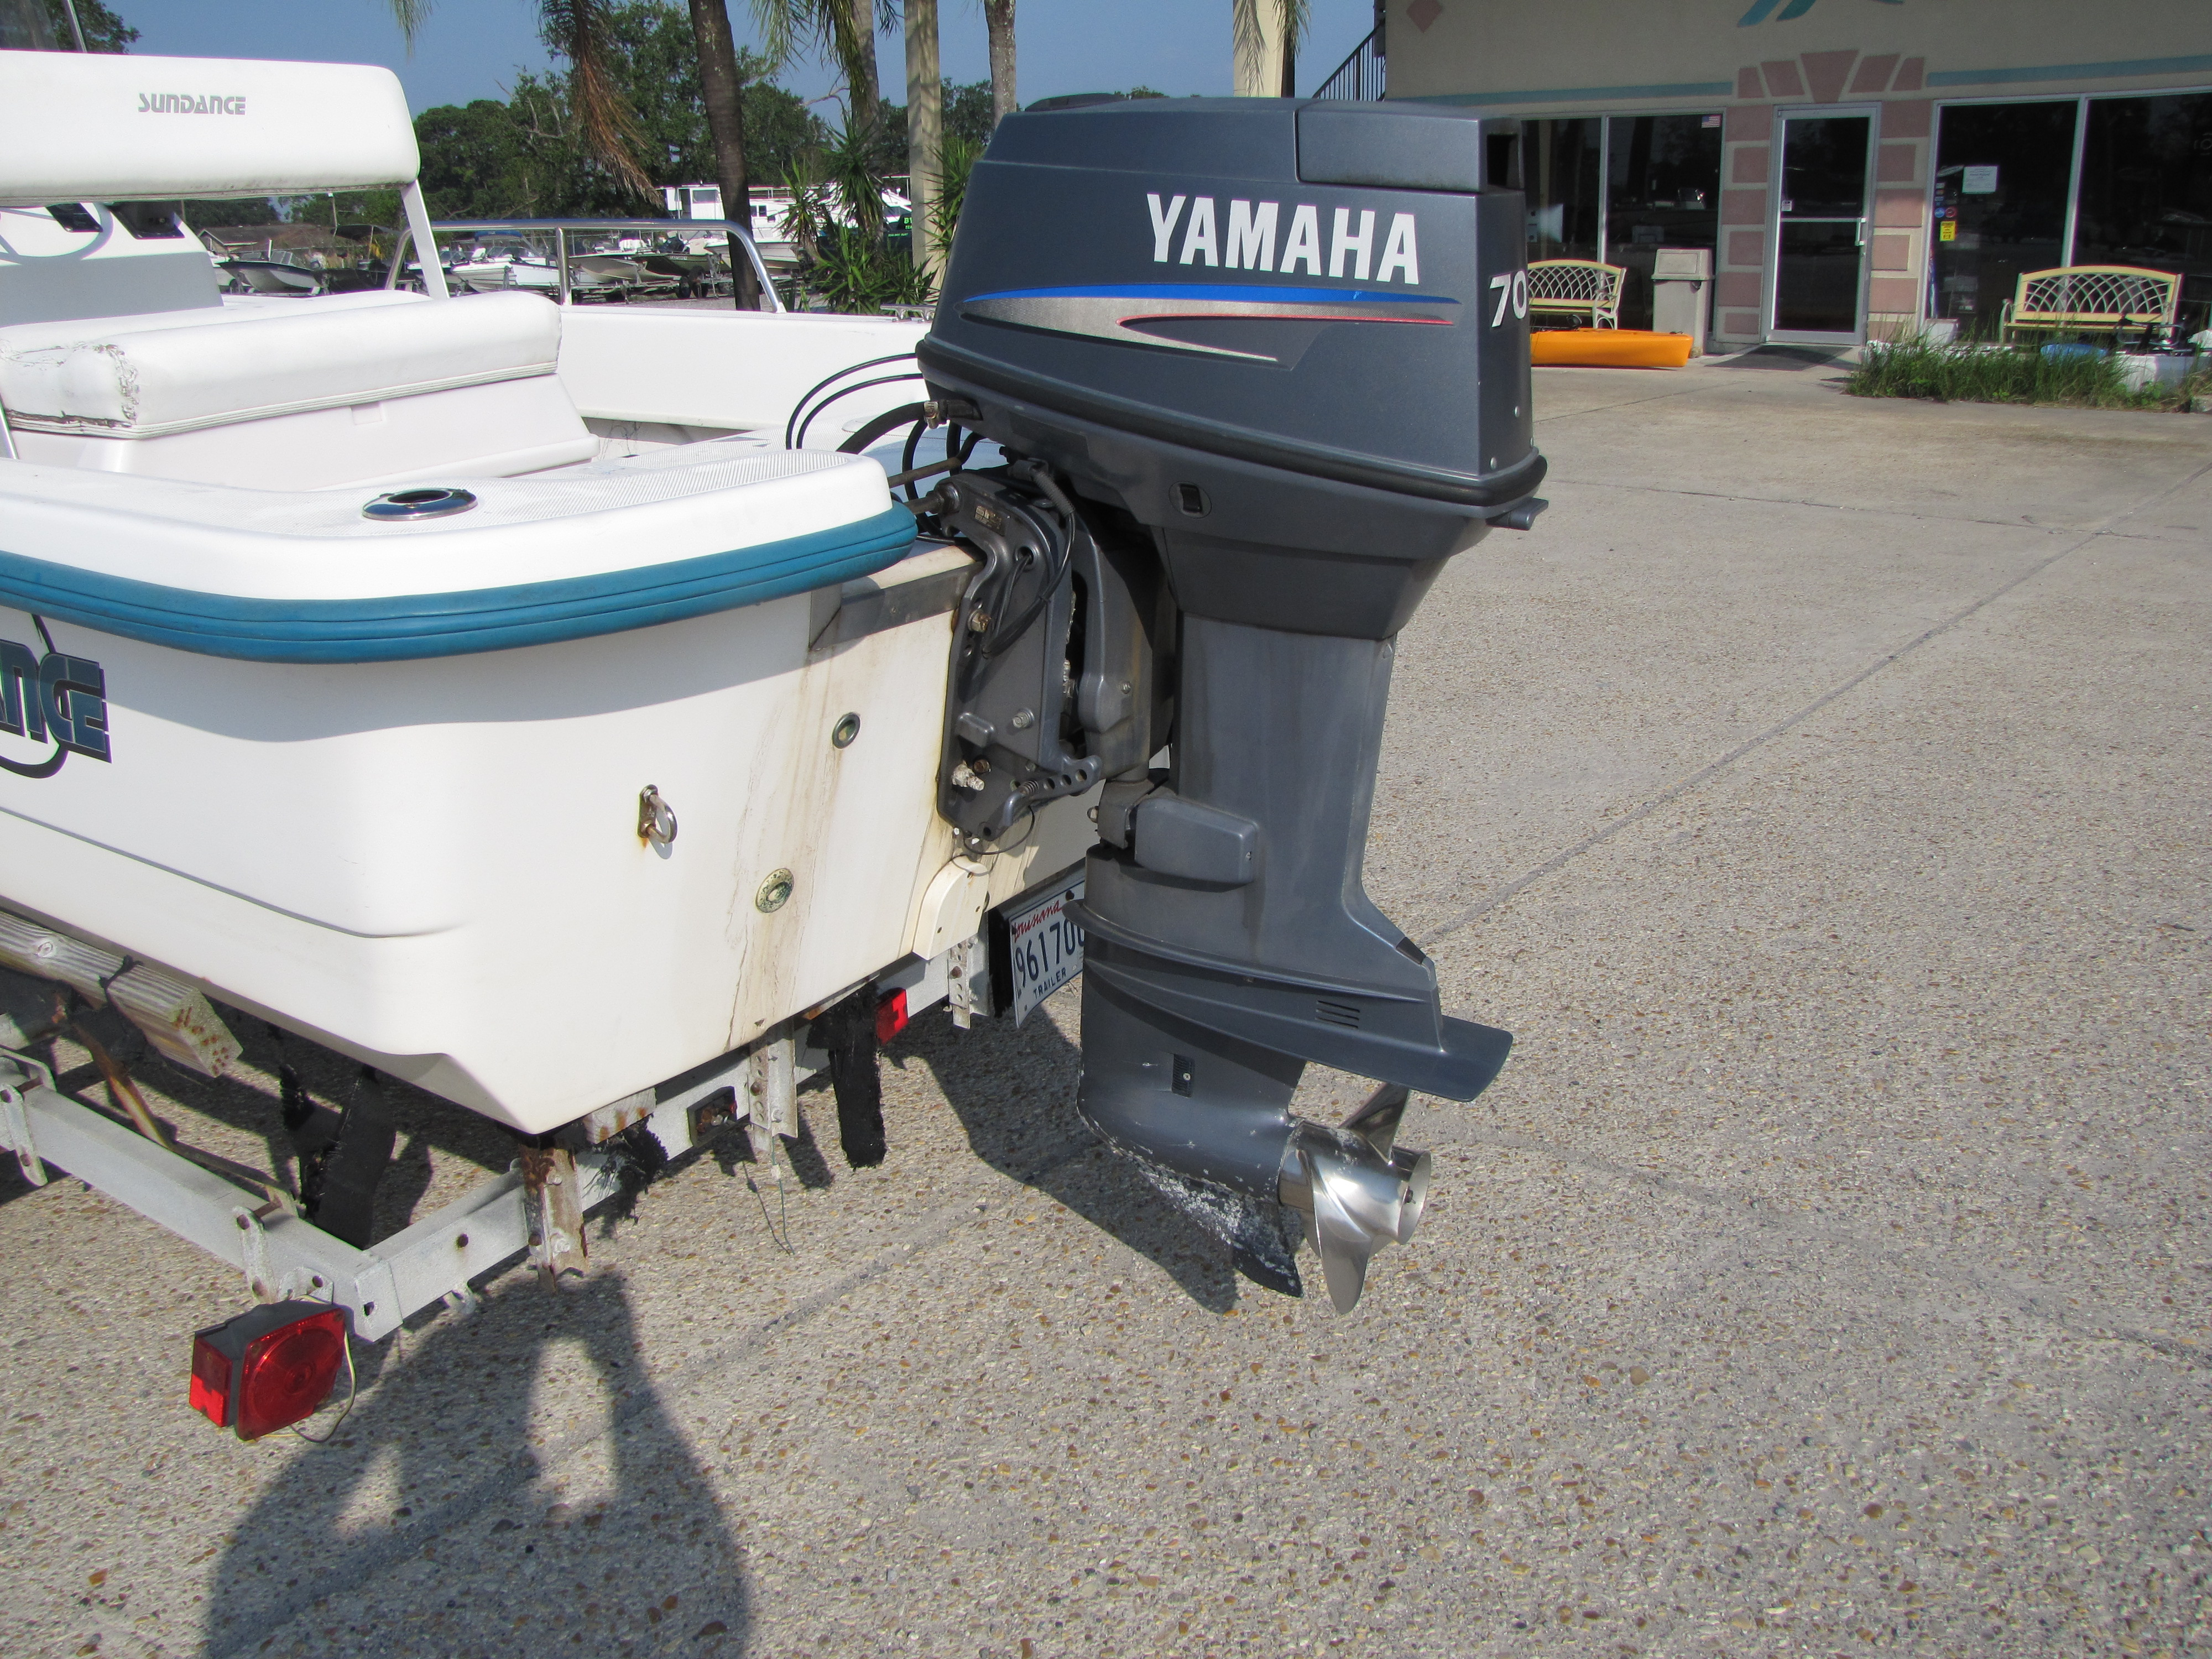 2009 Sundance boat for sale, model of the boat is 17 cc & Image # 3 of 15